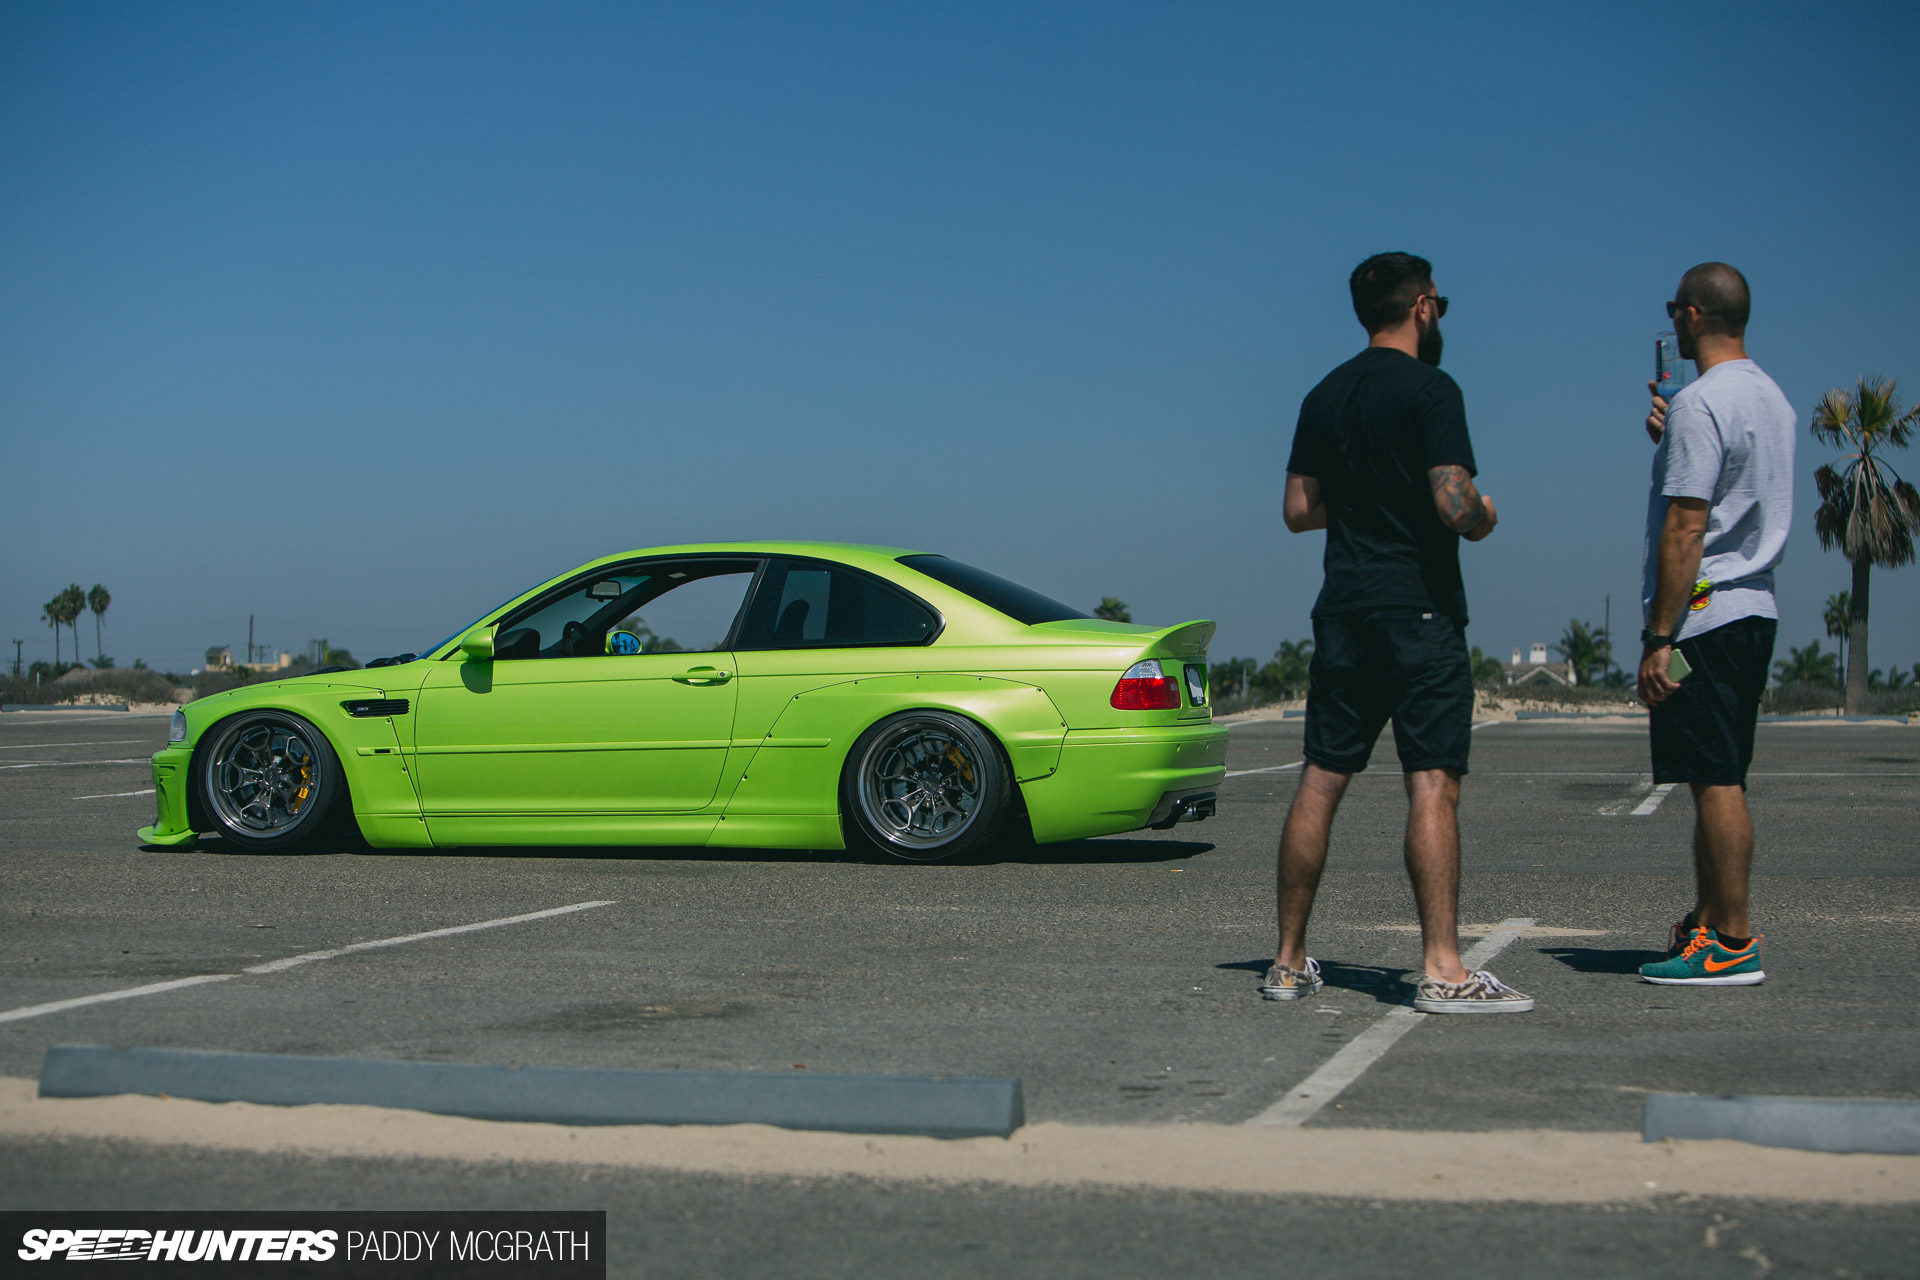 Bmw Nazca M further Spa H besides Bmw Series Series Multifunction Instrument Dispay Mfid in addition Matte Black E M Means Business Photo Gallery additionally Alfa Romeo P. on bmw touring race car